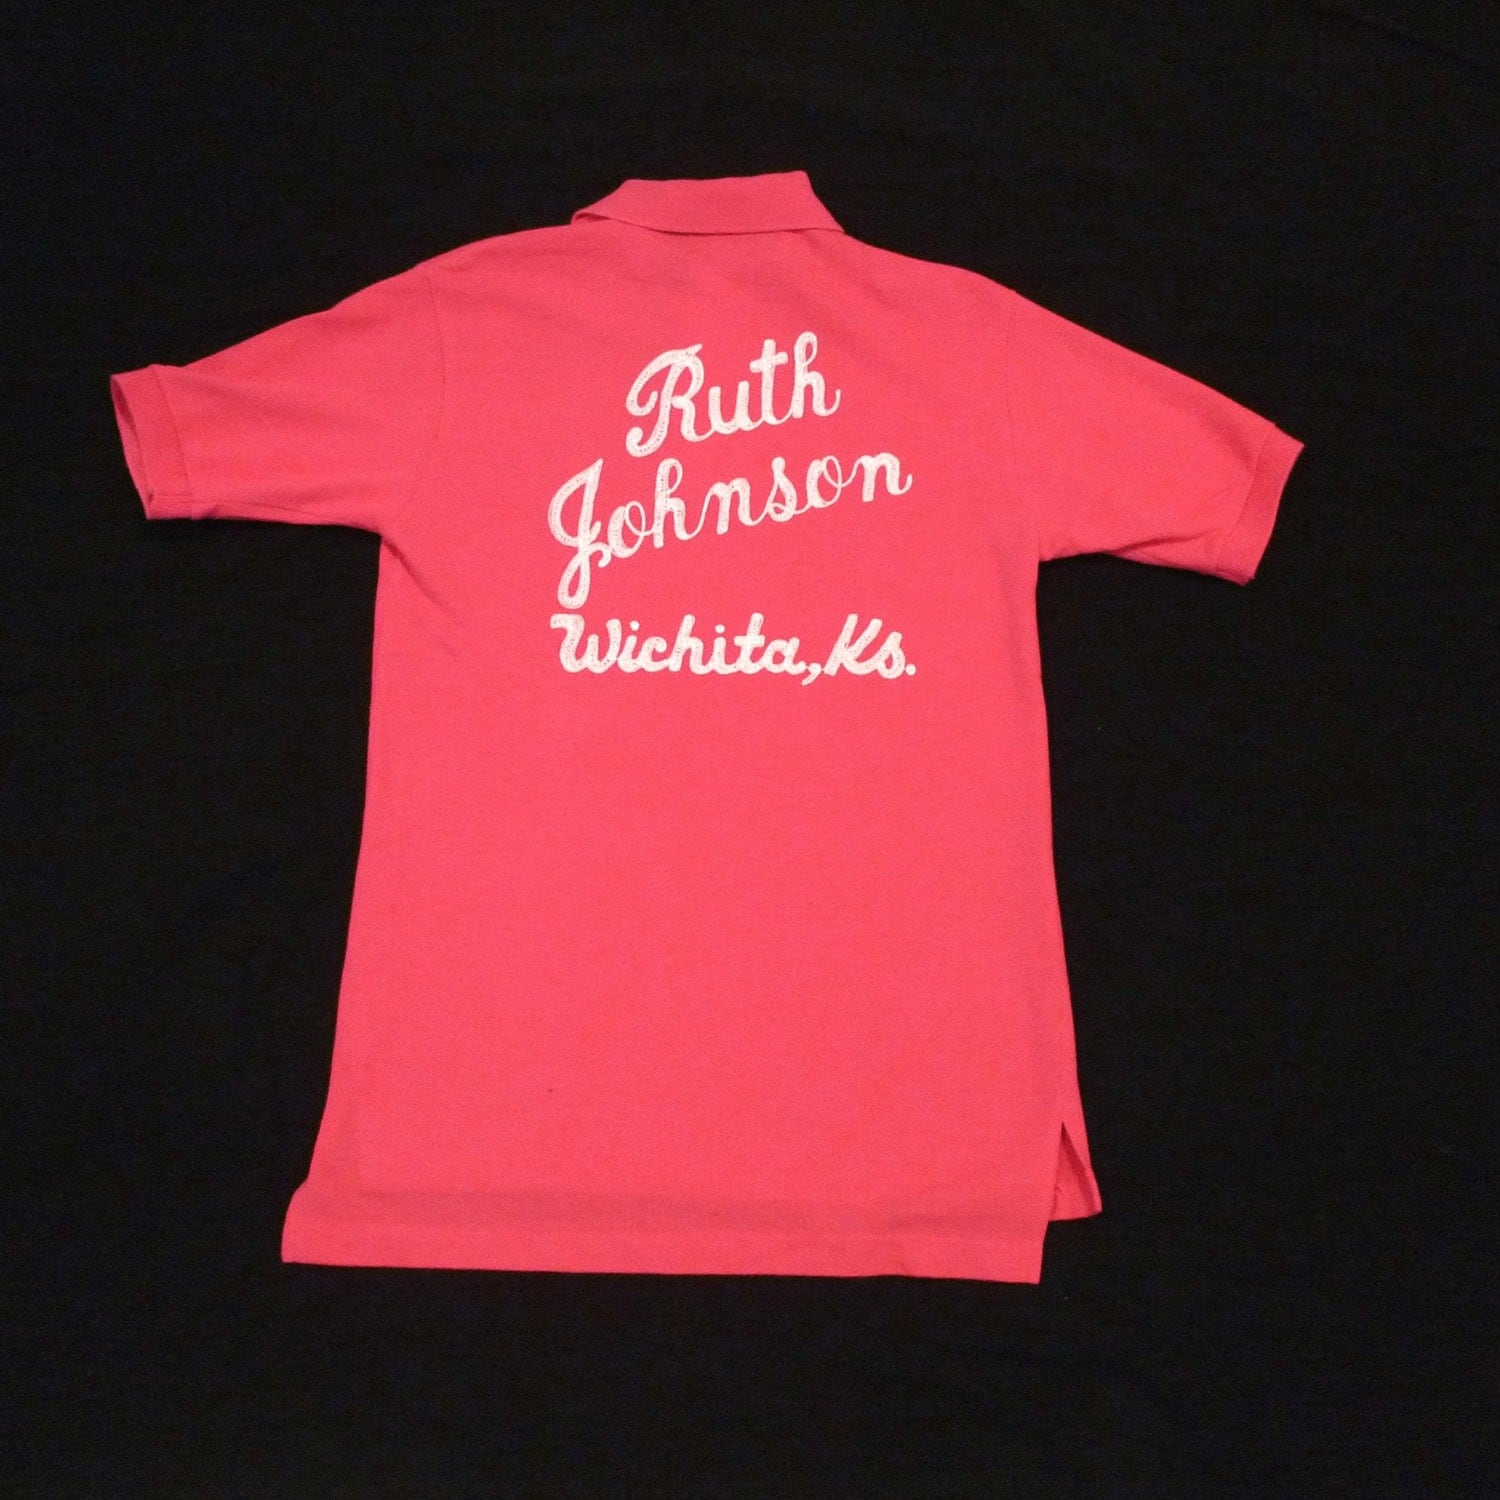 Design your own t-shirt hot pink -  Personalized Ruth Johnson Embroidered Hot Pink Zoom